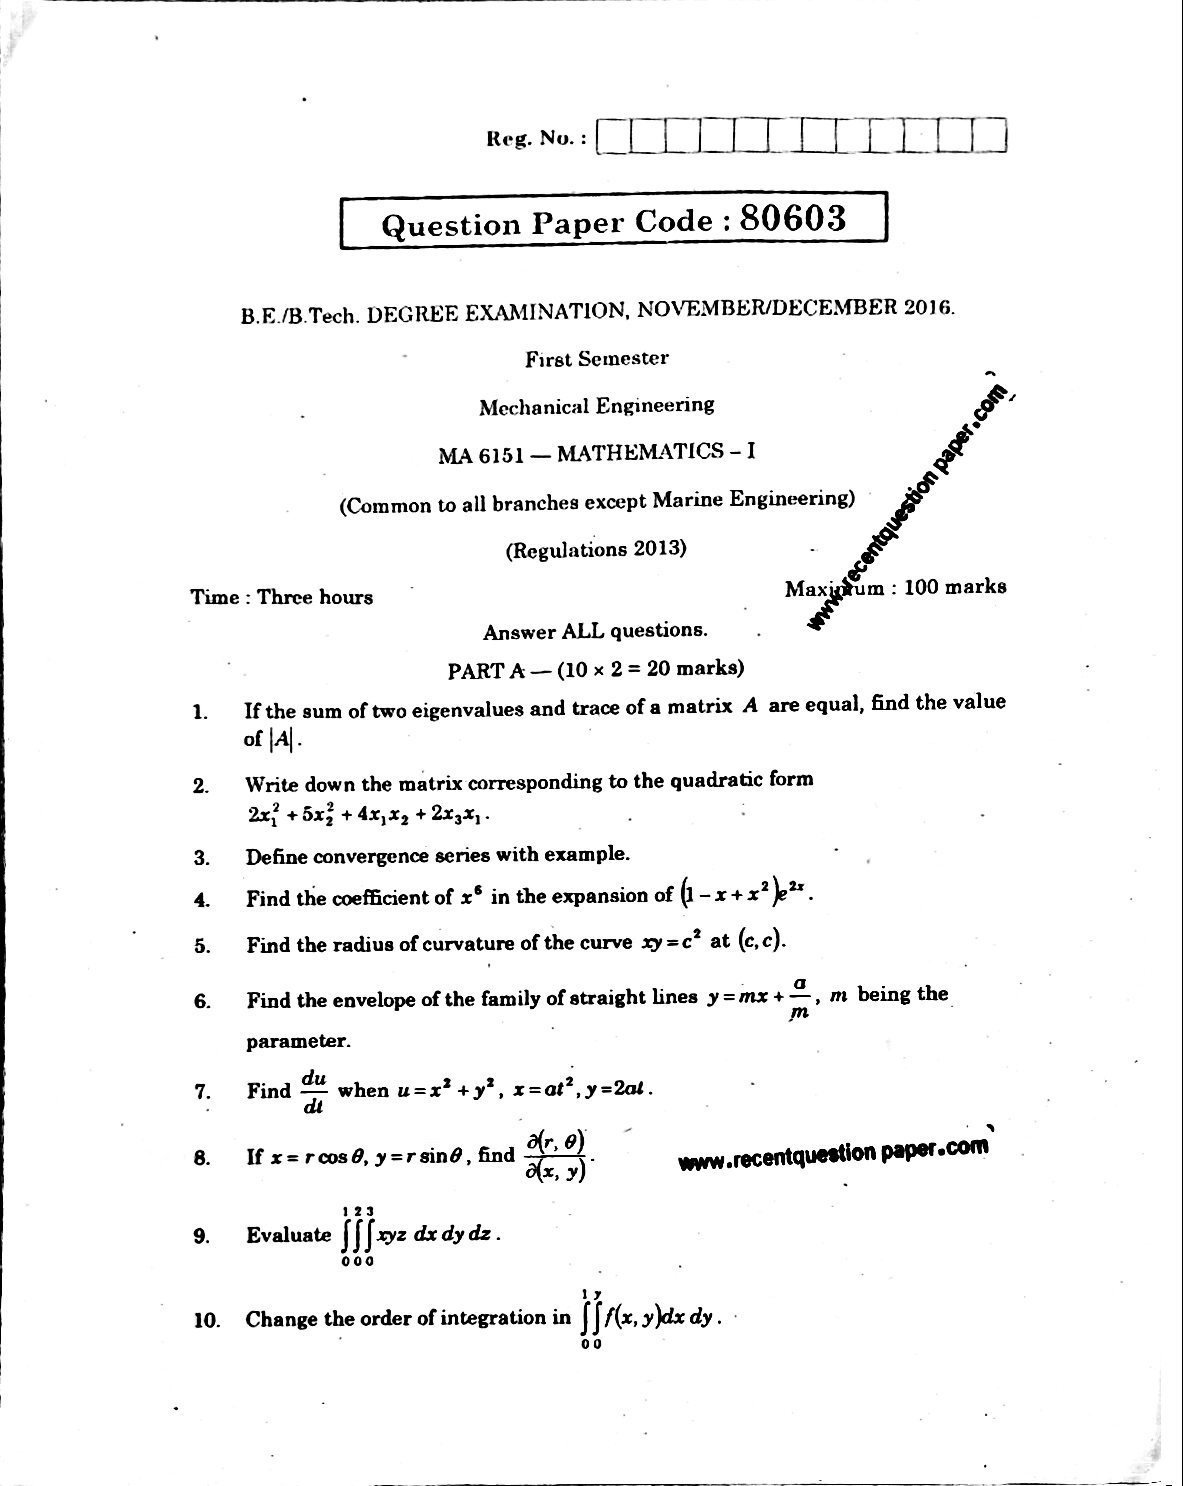 MA6151 Mathematics-I Anna University Question paper Nov/Dec 2016